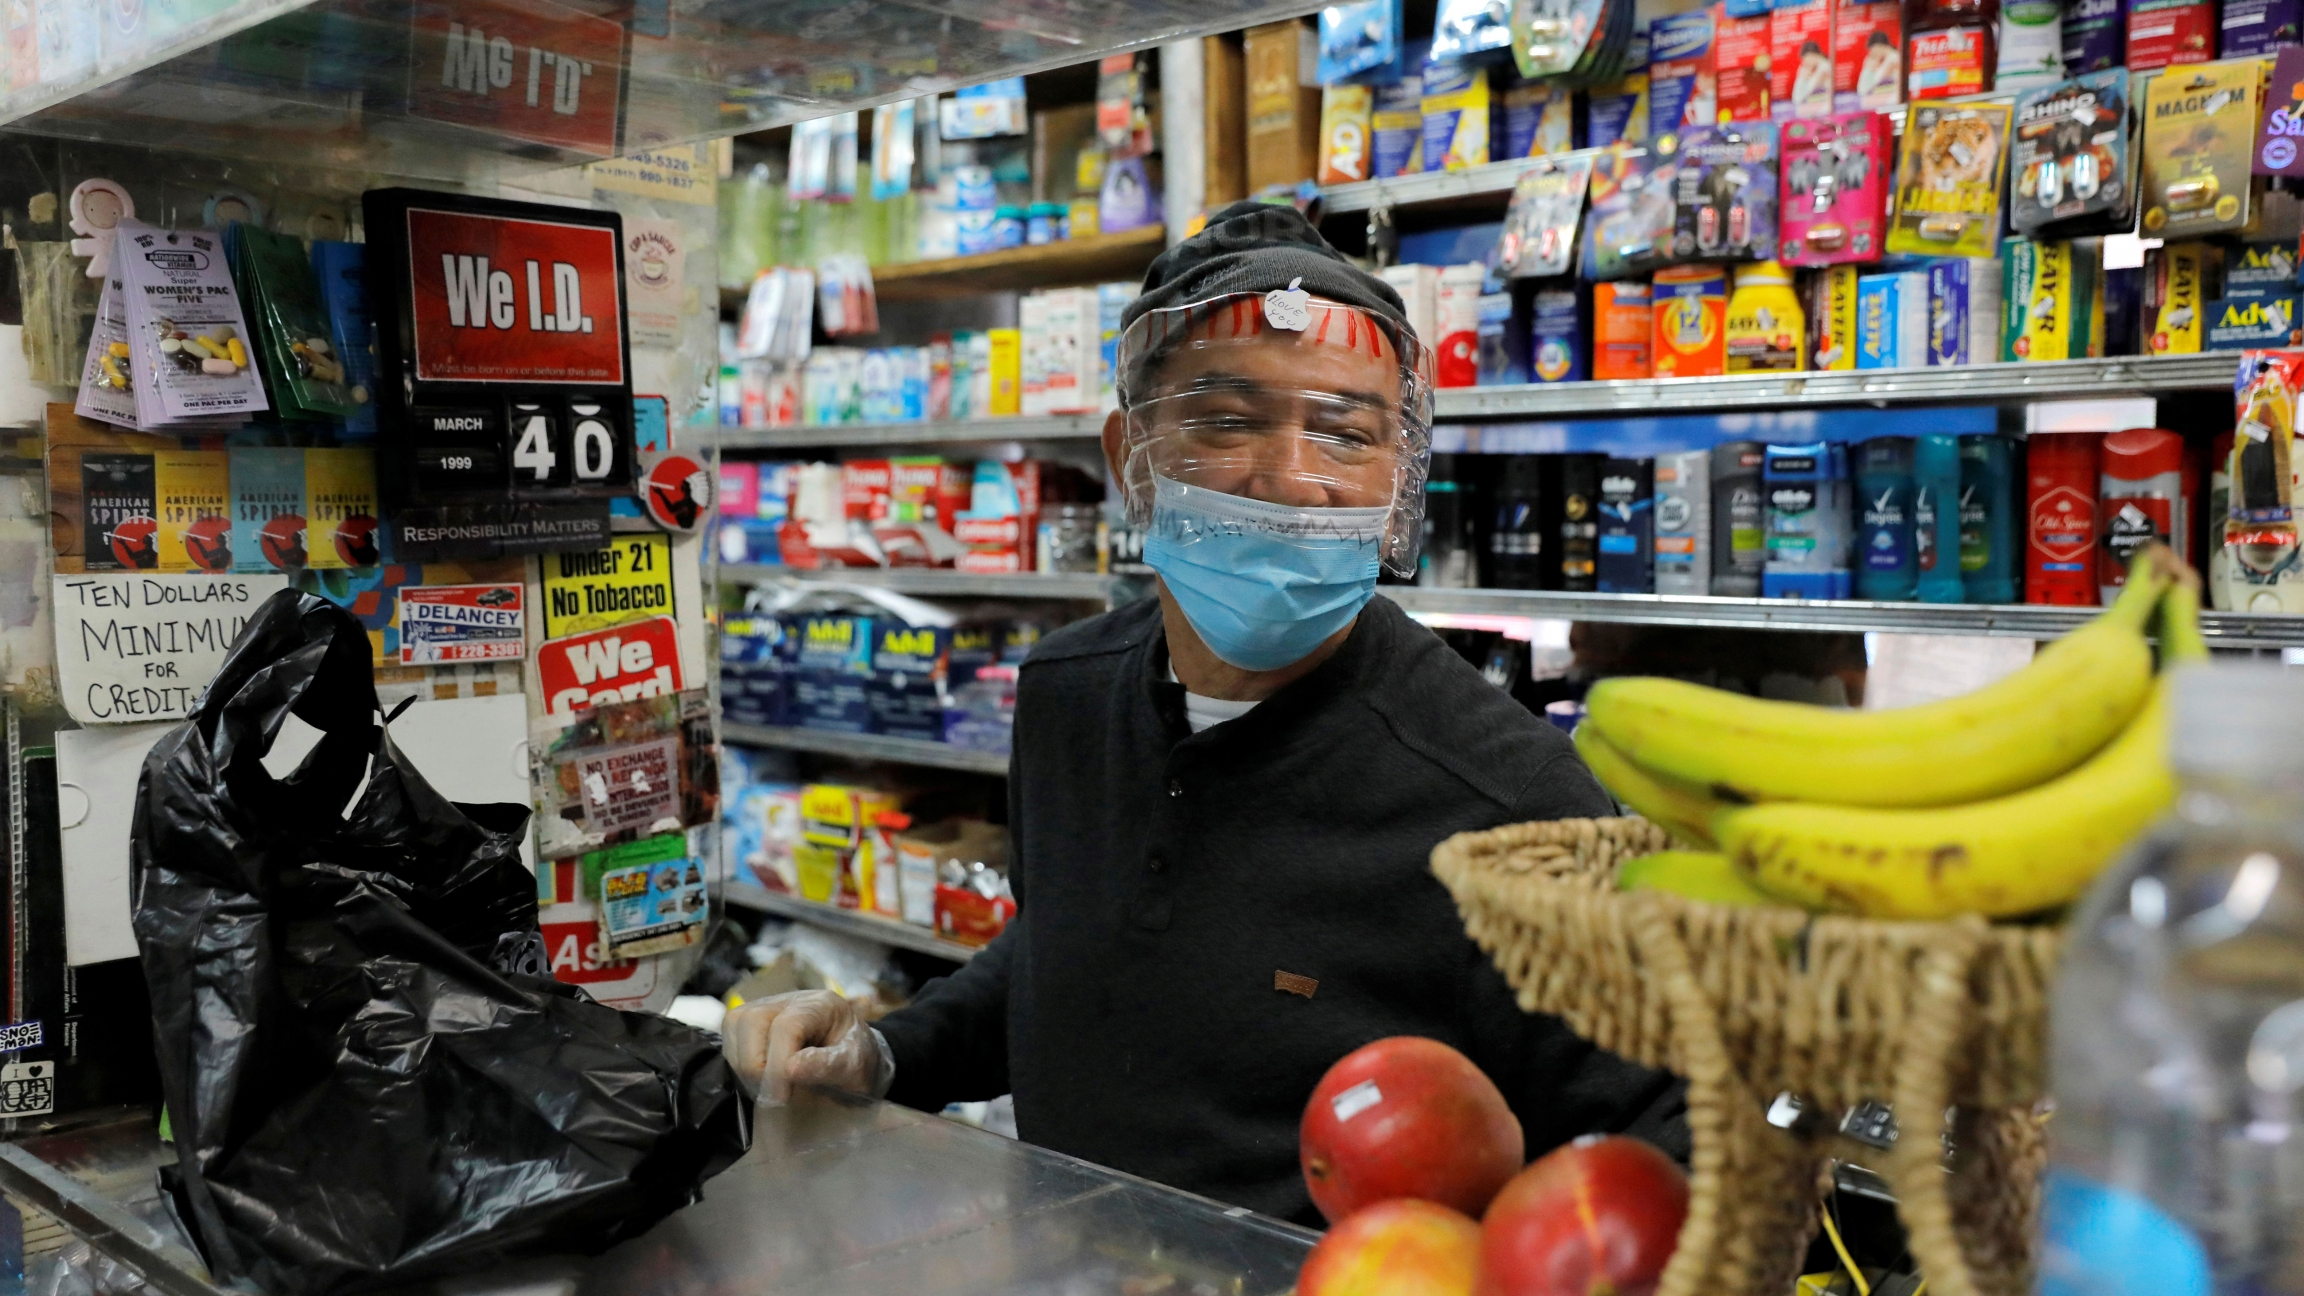 Bodega manager Rafael Perez wears a homemade face protector, fashioned from a water bottle, as he works in the Chinese Hispanic Grocery during the coronavirus disease (COVID-19) outbreak in New York City, New York, April 2, 2020.